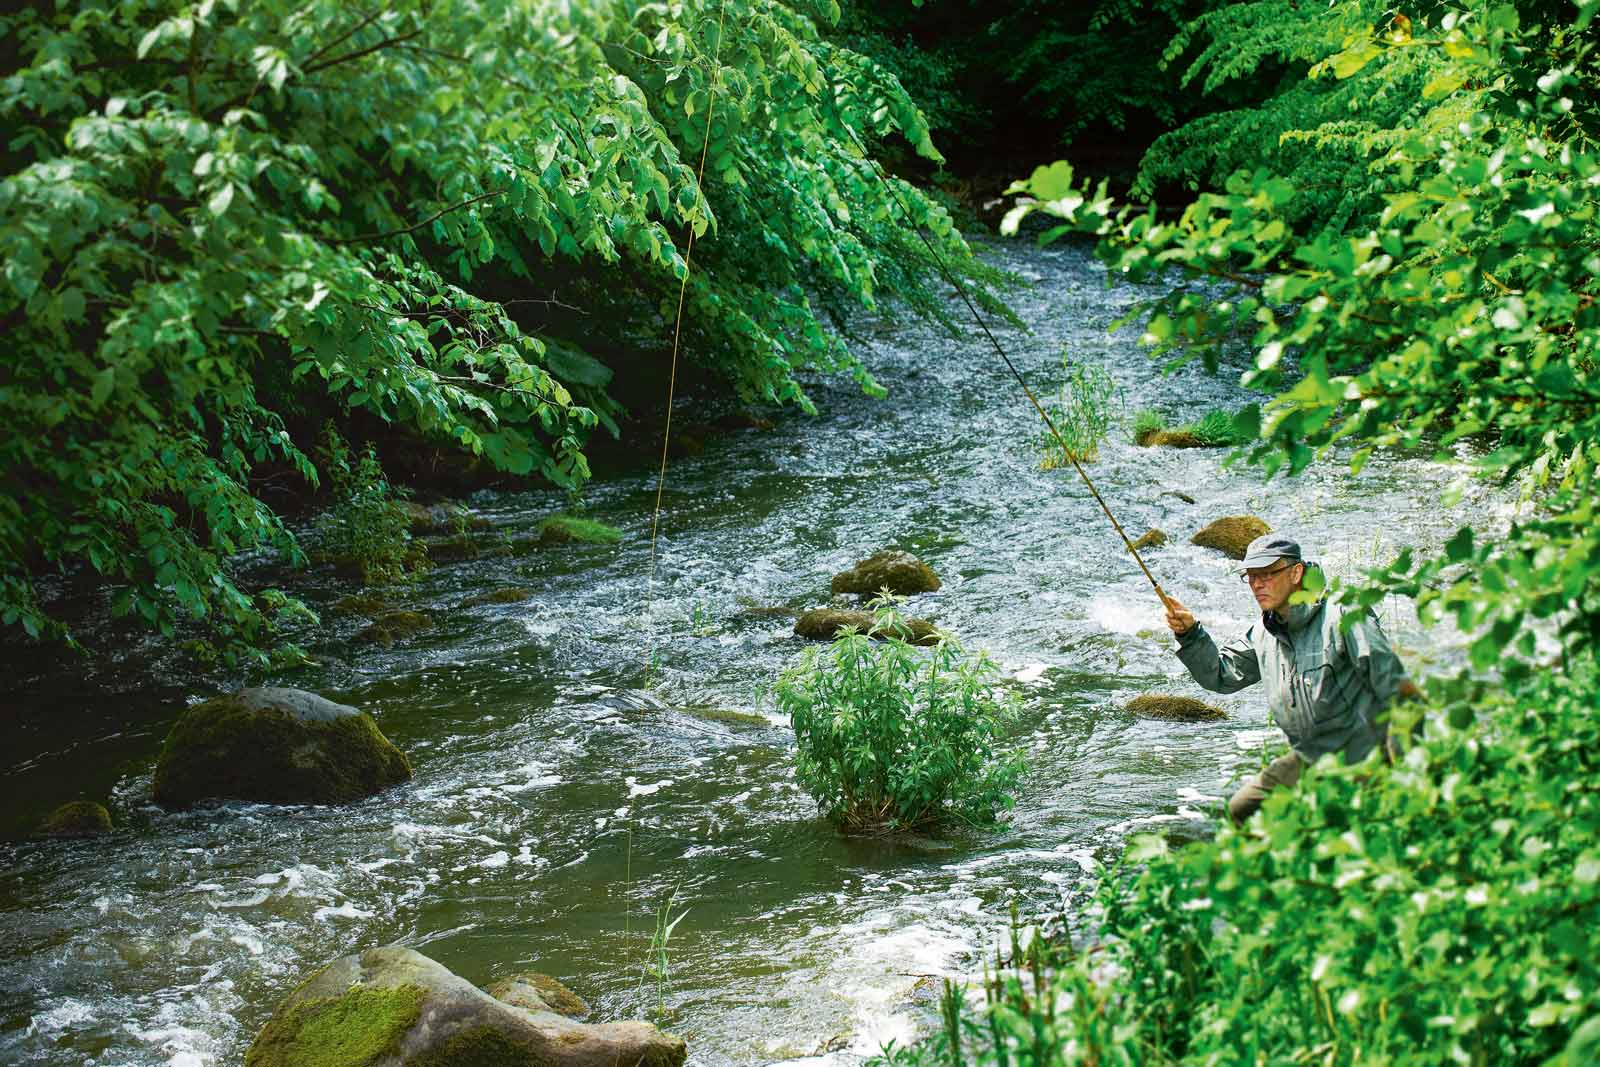 TENKARA – BACK INTO THE FUTURE